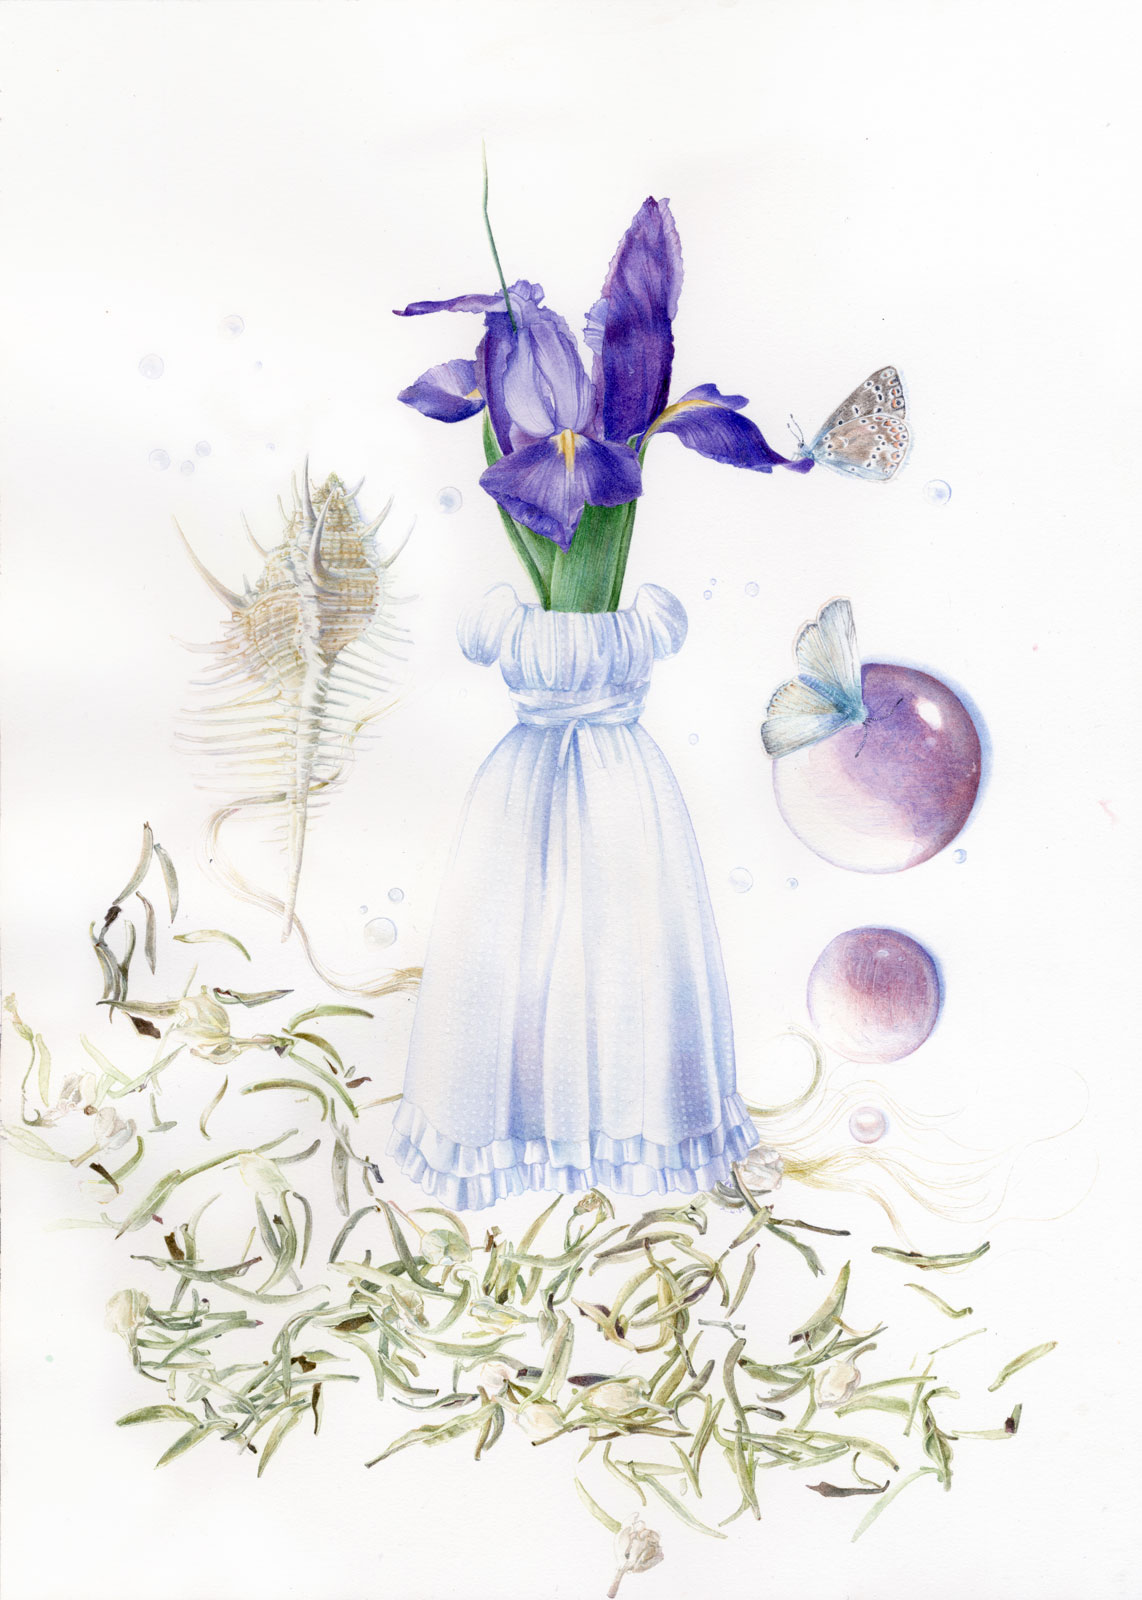 Collaborative technical illustration of a herbarium made up with fashionable lolita clothing from Moi-Même-Moitié, and inspiration drawn from Hana-Rebecca such as tea leaves, a murex, an iris, butterflies often seen near rivers, and quartz stones.